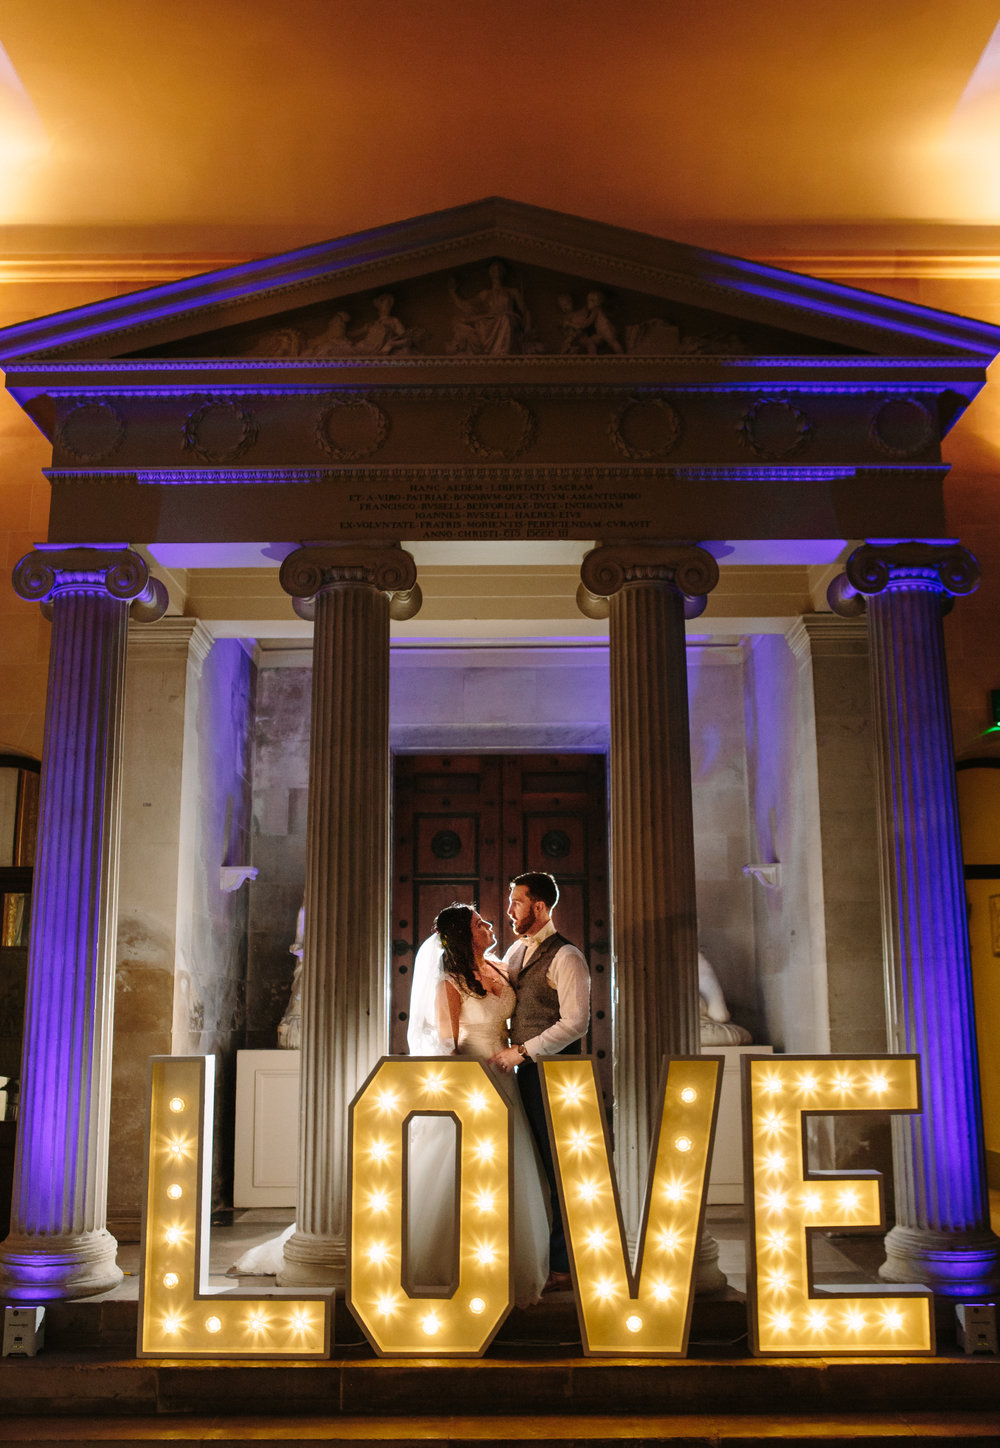 london-bedfordshire-uk-wedding-photography-woburn-scultpture-gallery-love-portrait-01